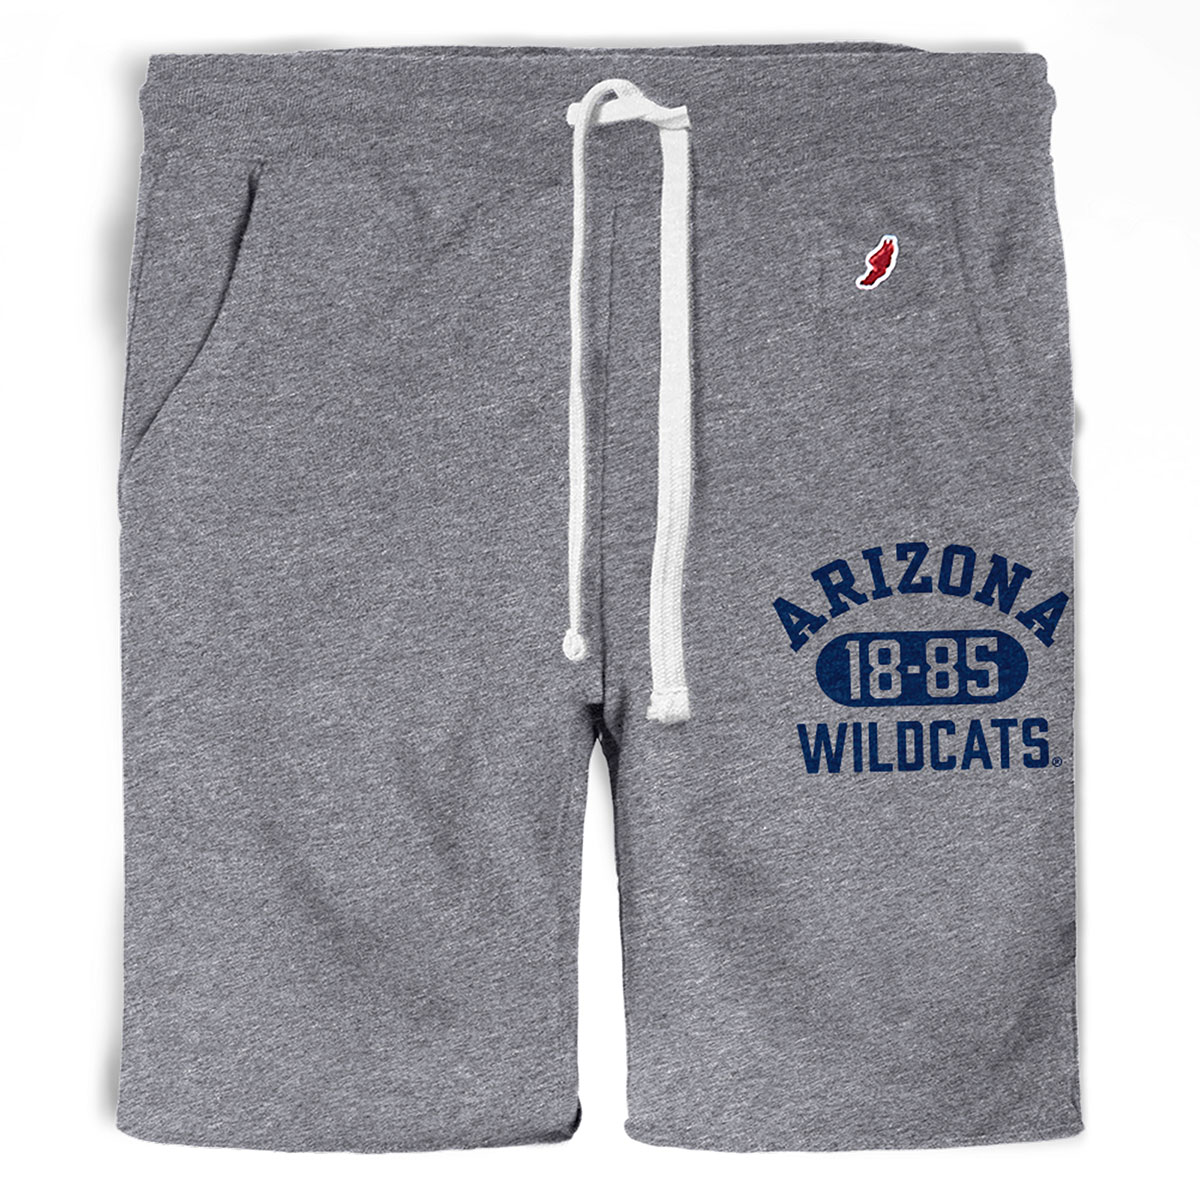 Image For League 91: Arizona 1885 Widlcats Collegiate Jogger Short